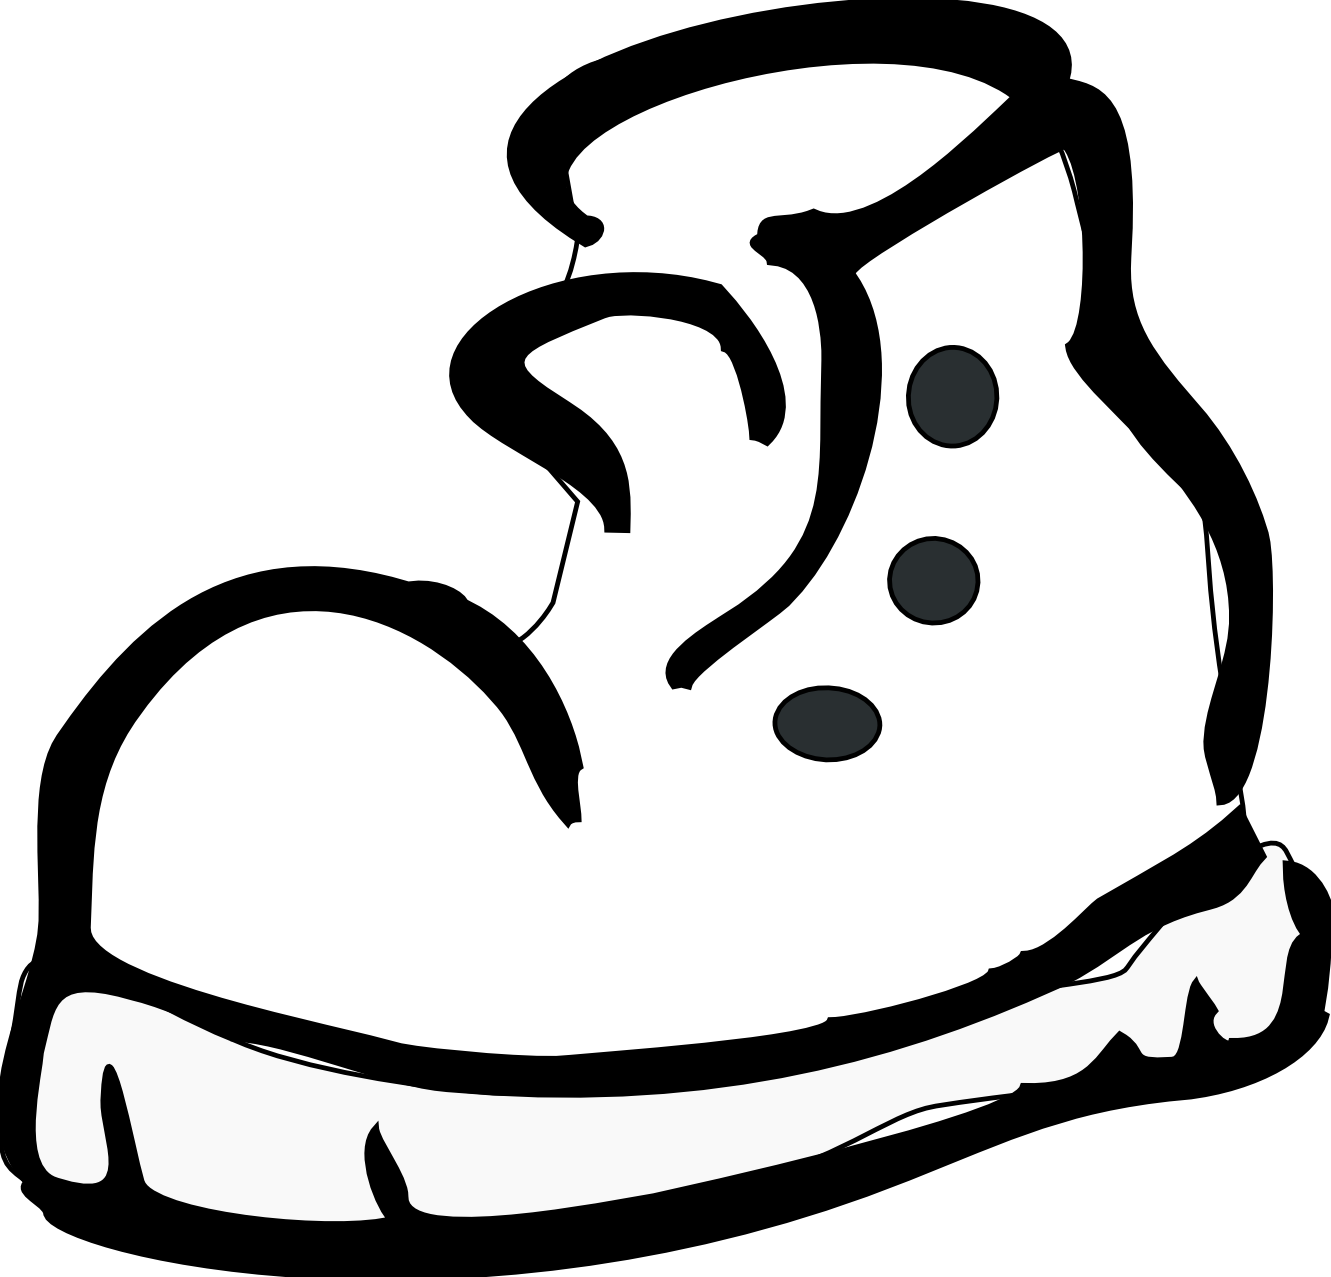 1331x1277 Tennis Shoes Clipart Black And White Free 5 4